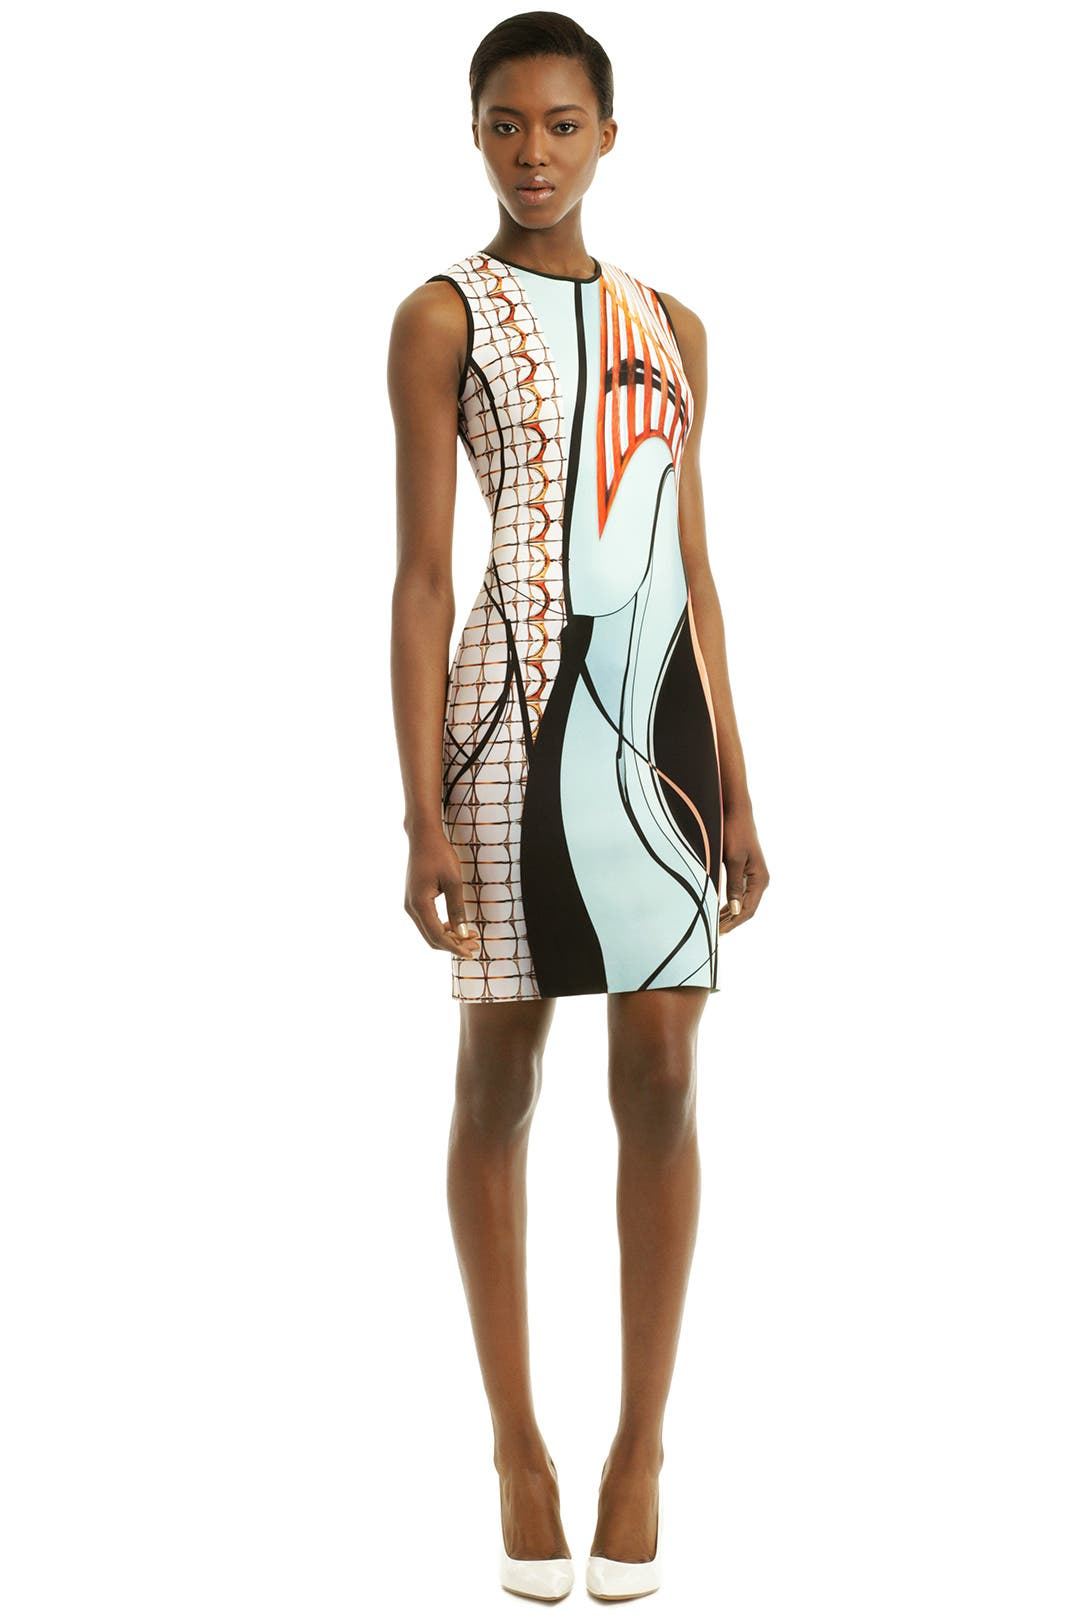 Palm Springs Print Dress by Clover Canyon